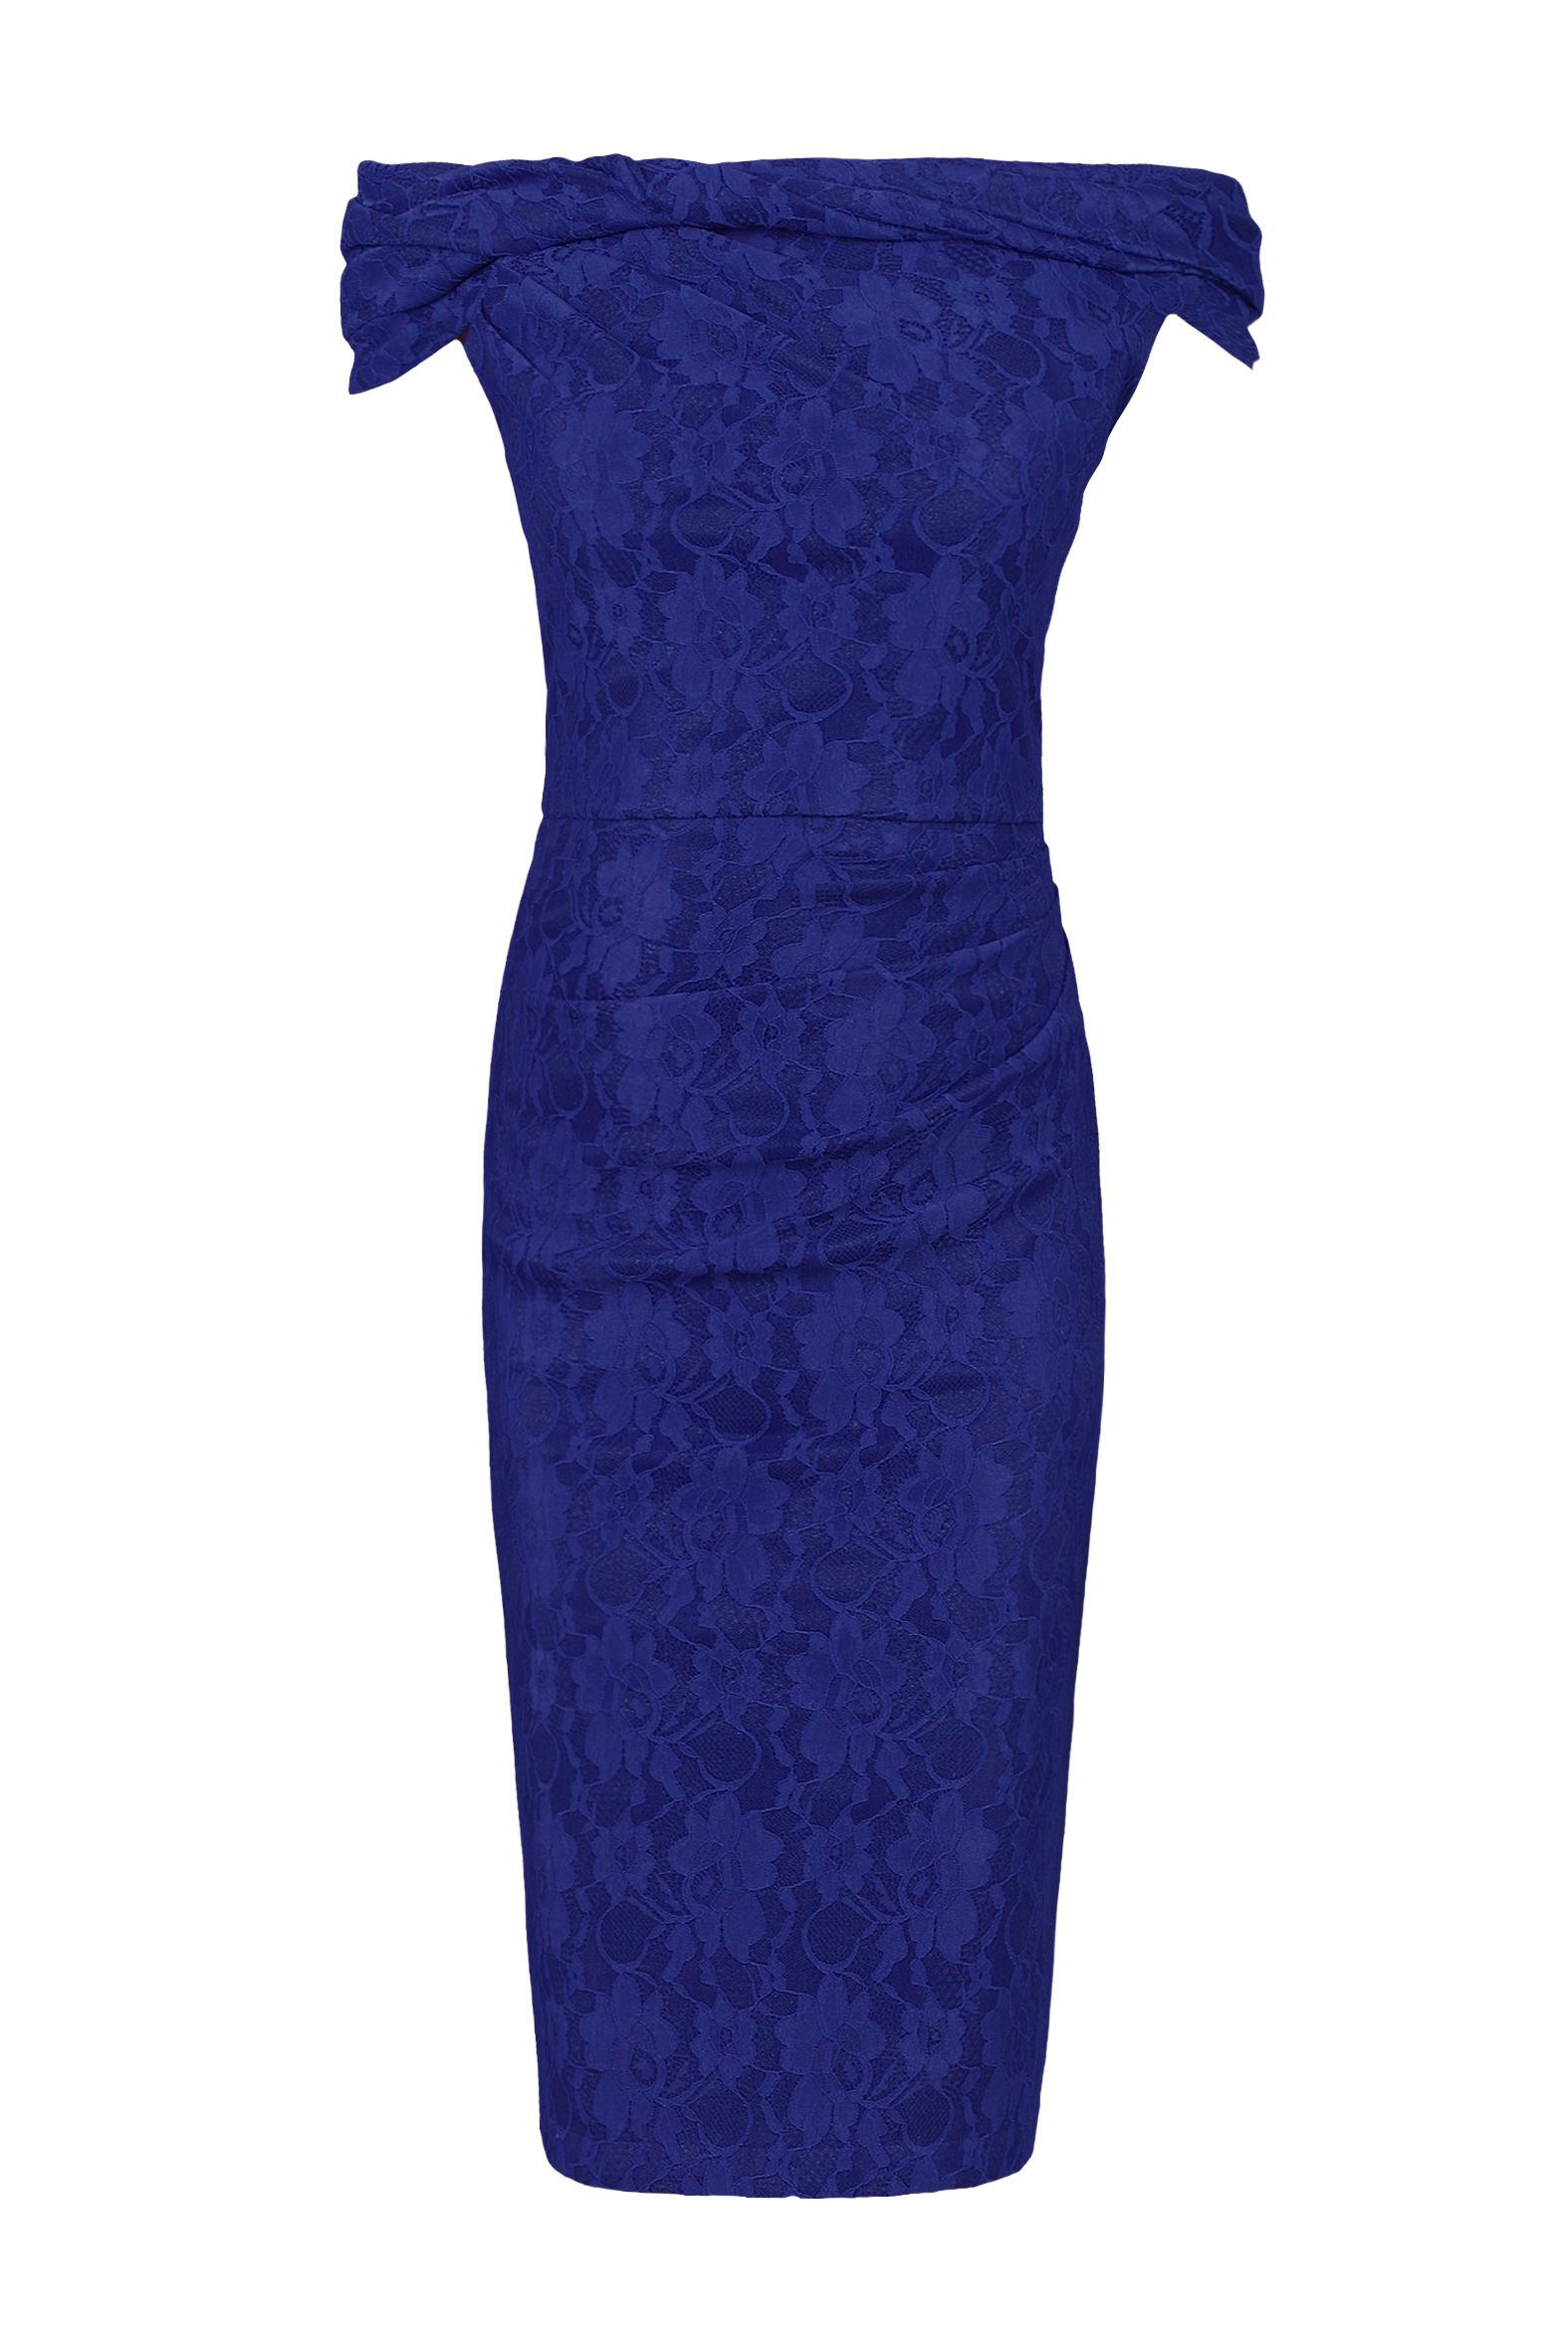 Jolie Moi Lace Bonded Bardot Neck Dress, Blue